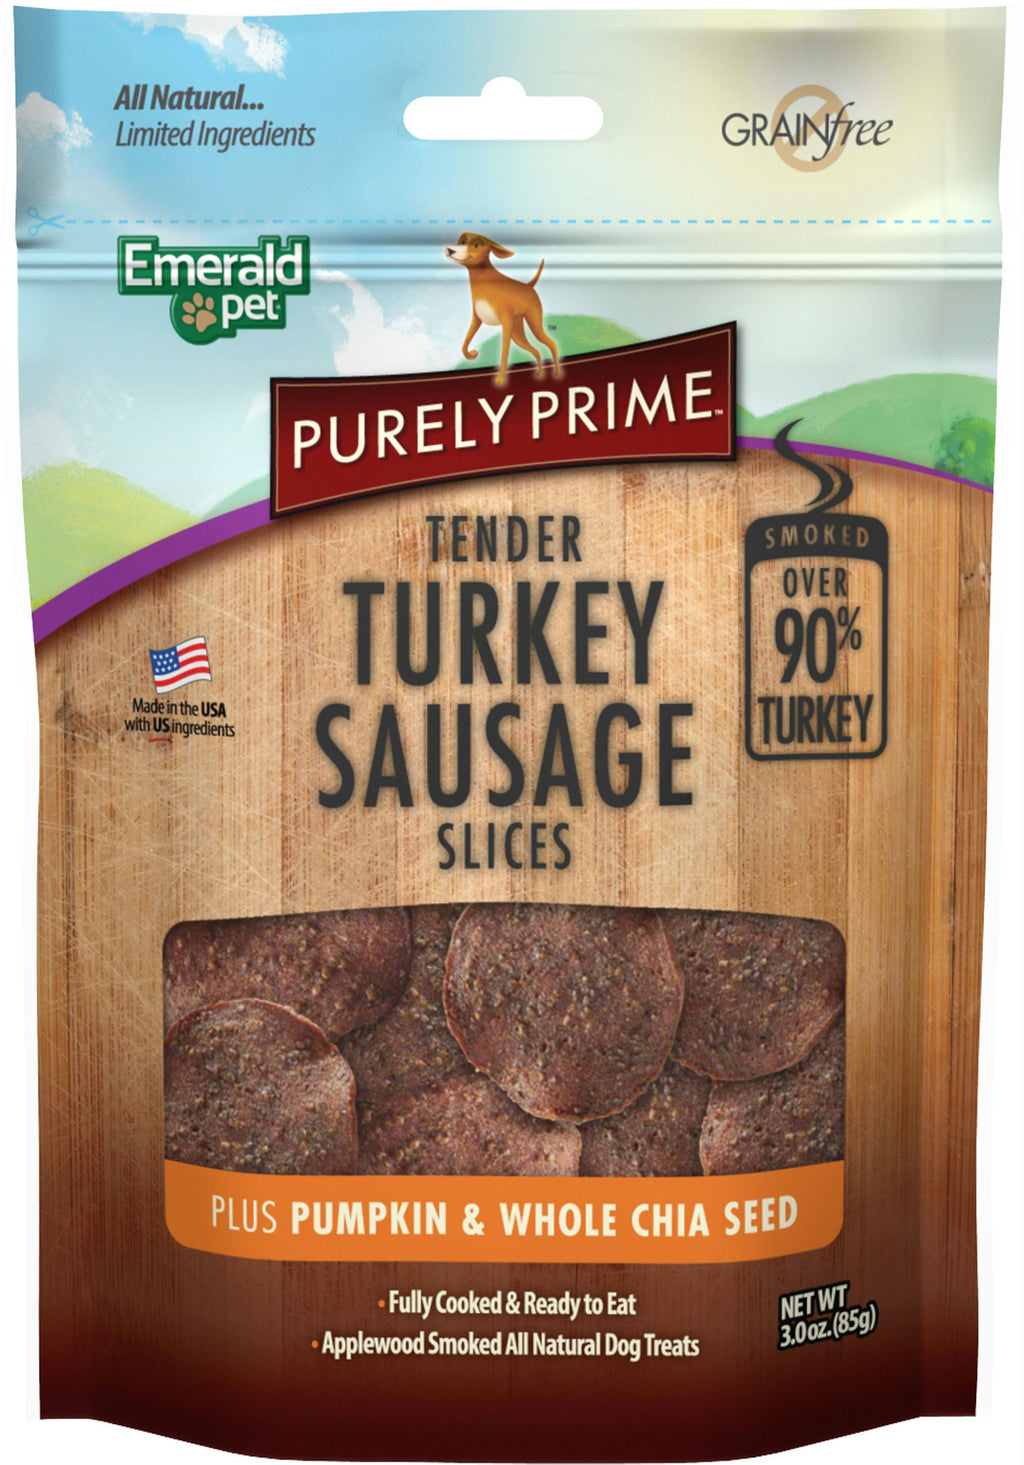 Purely Prime Turkey Sausage Slices